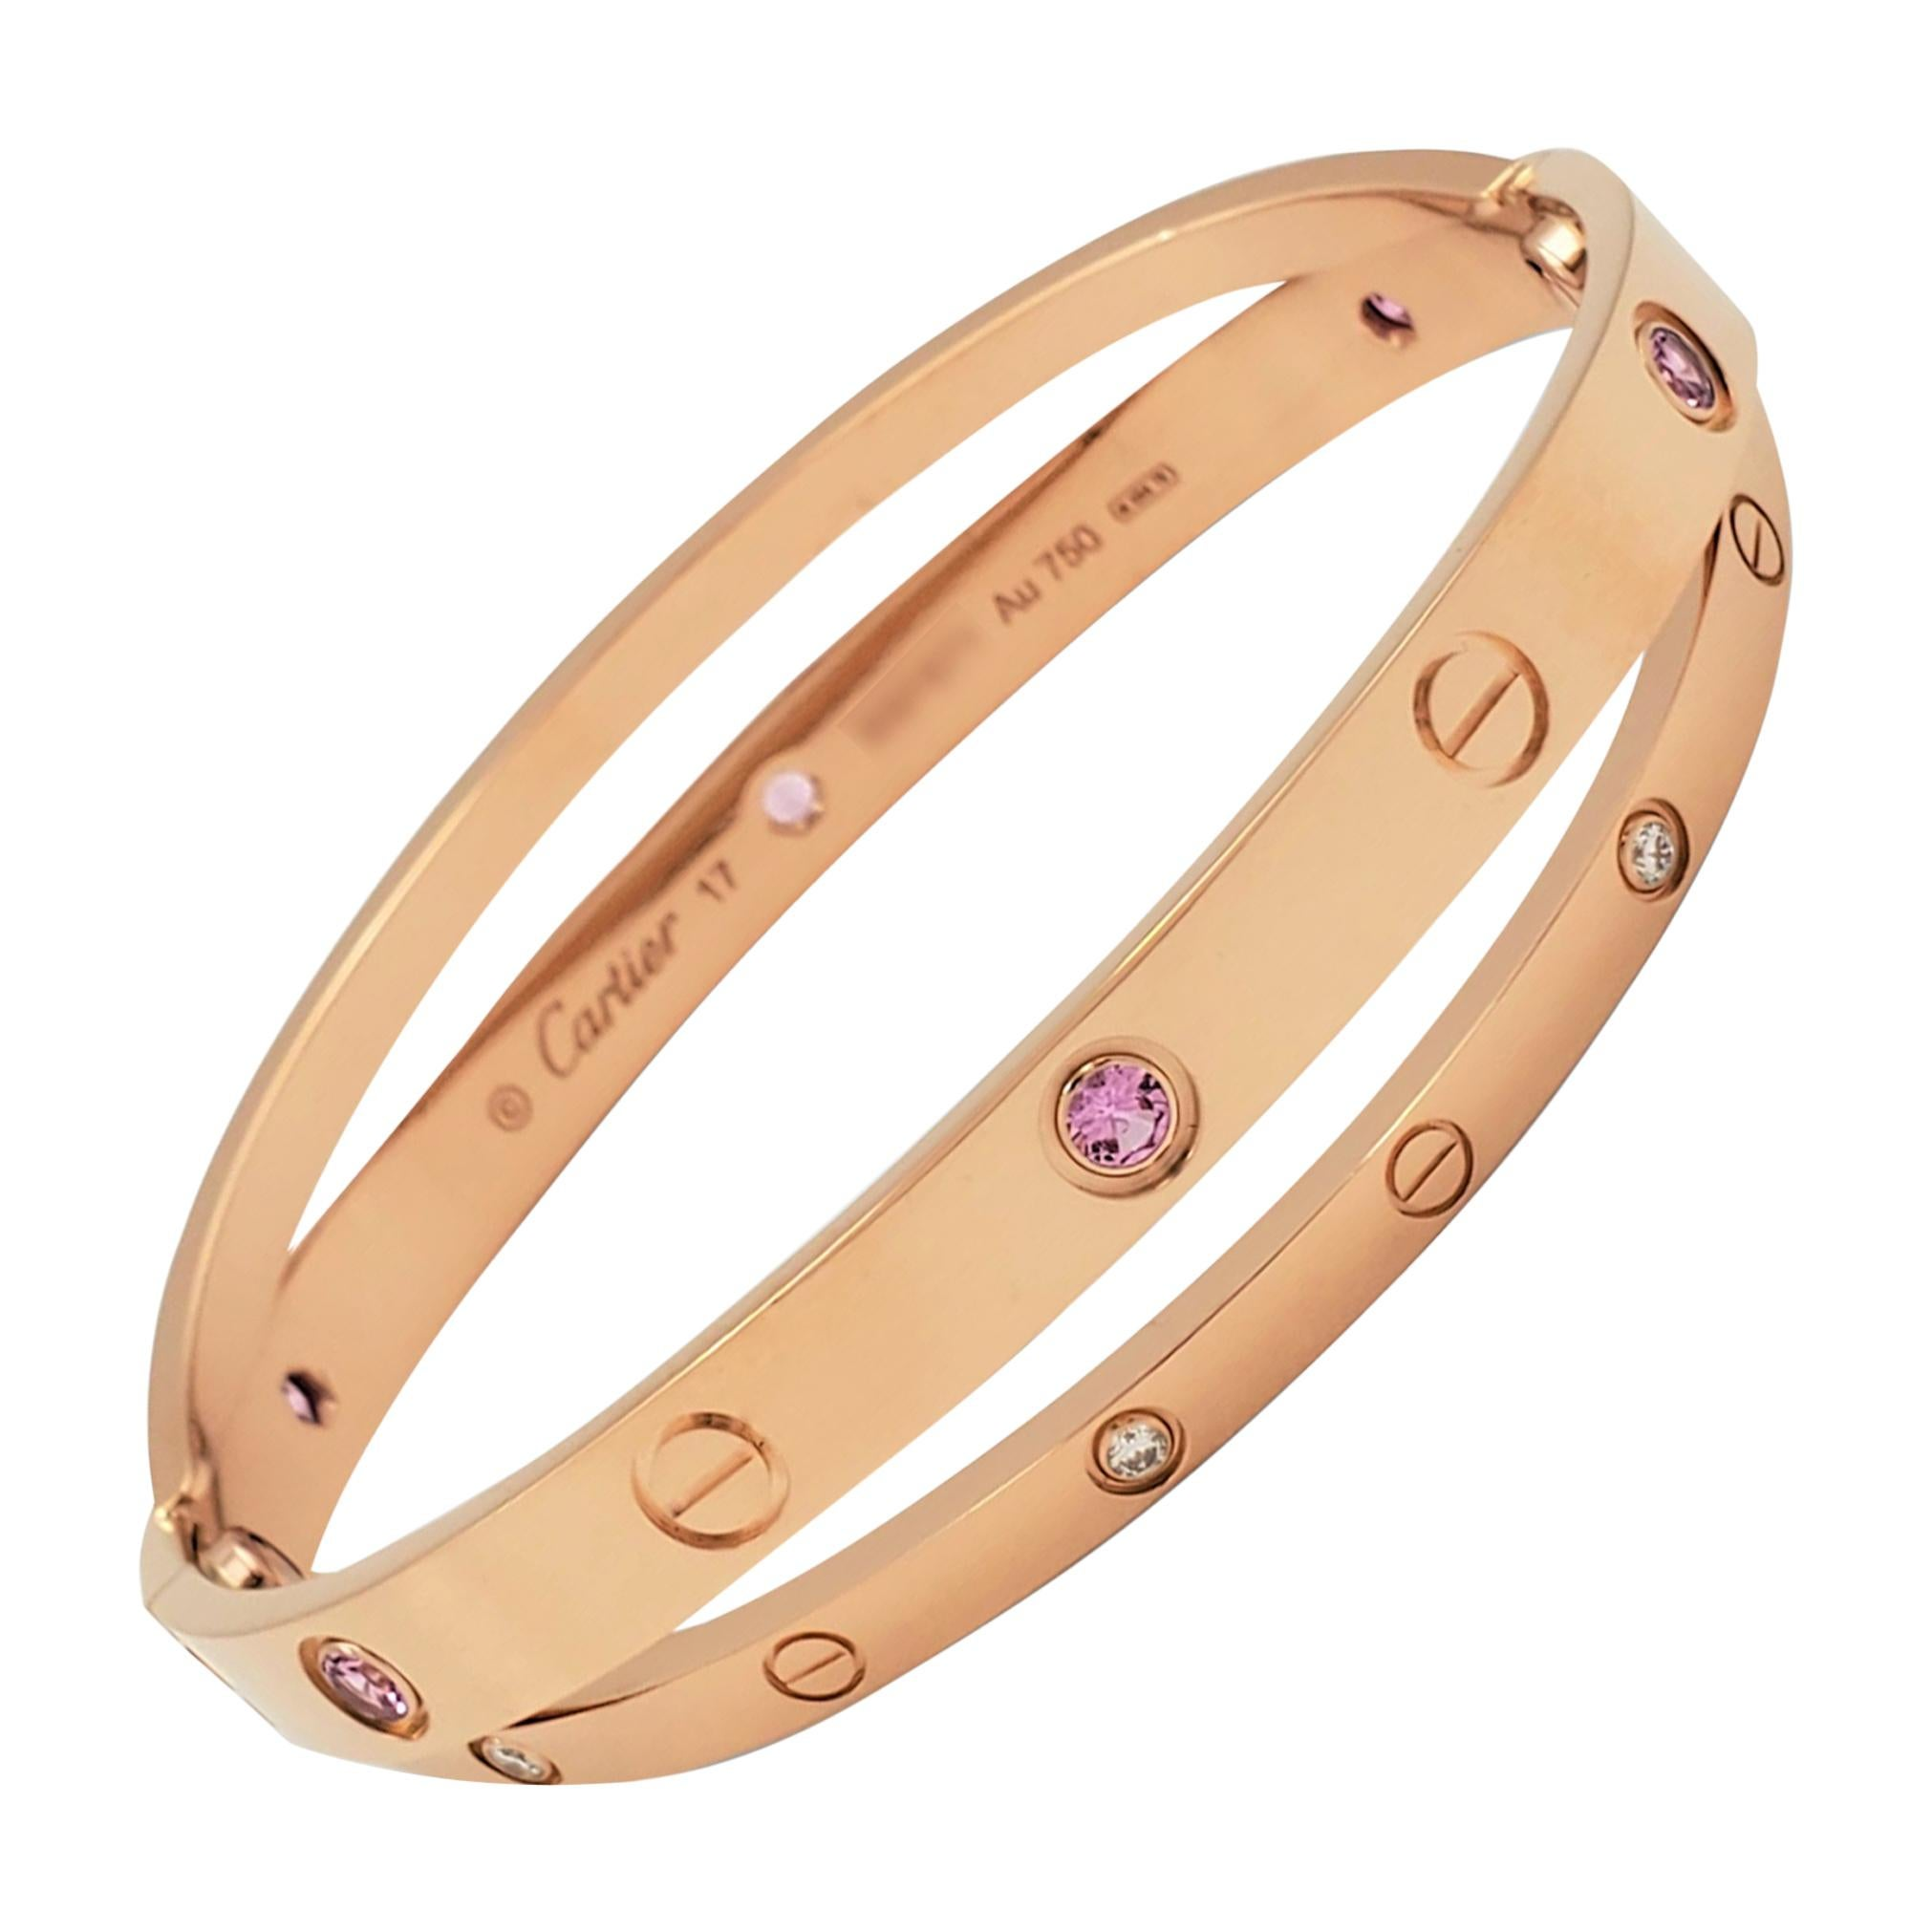 Cartier 'Love' Rose Gold Diamond and Pink Sapphire Bracelet